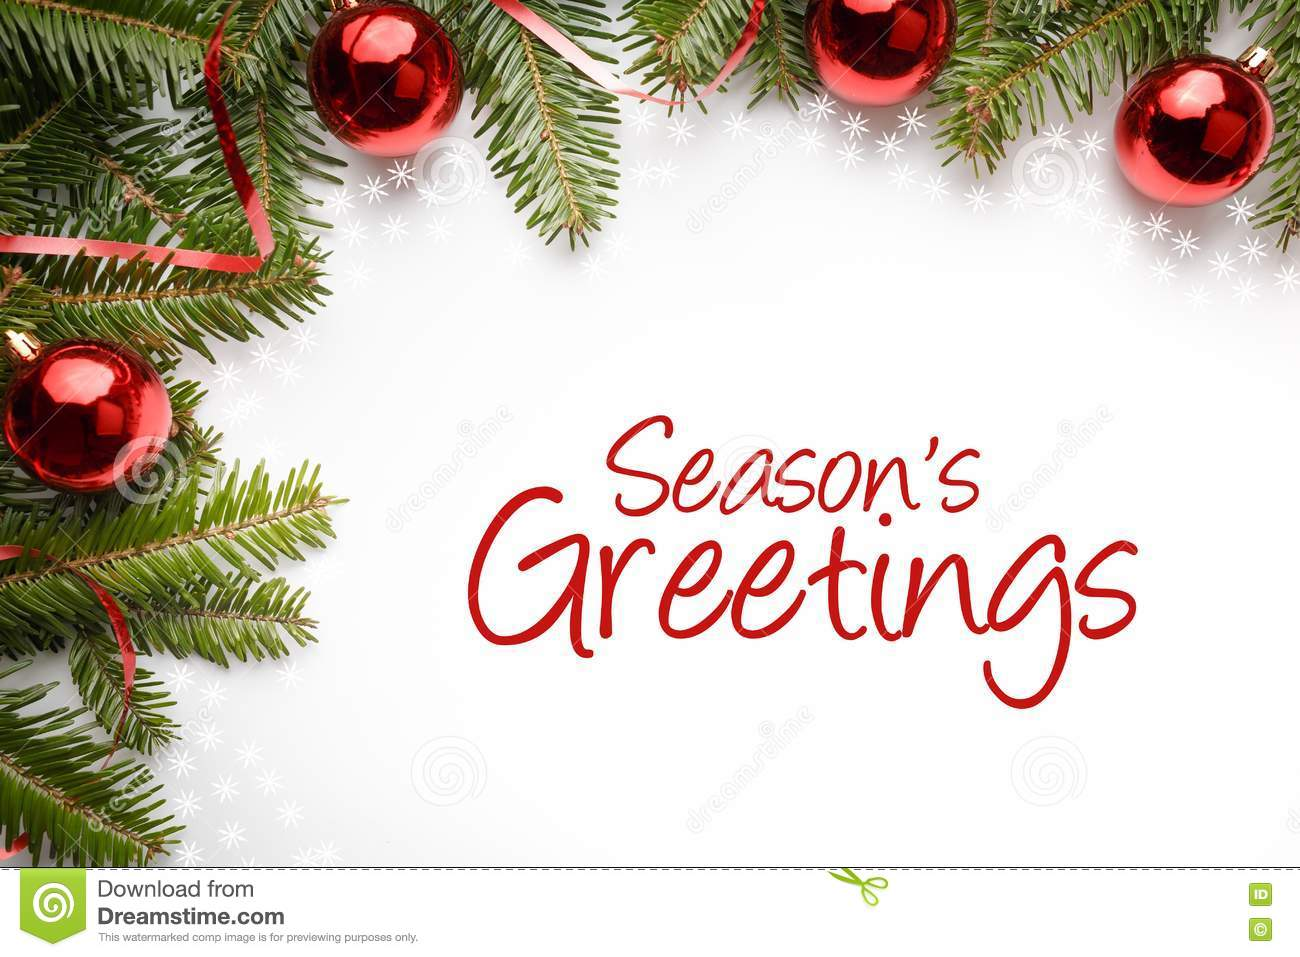 Christmas Decorations With The Greeting `Season`s